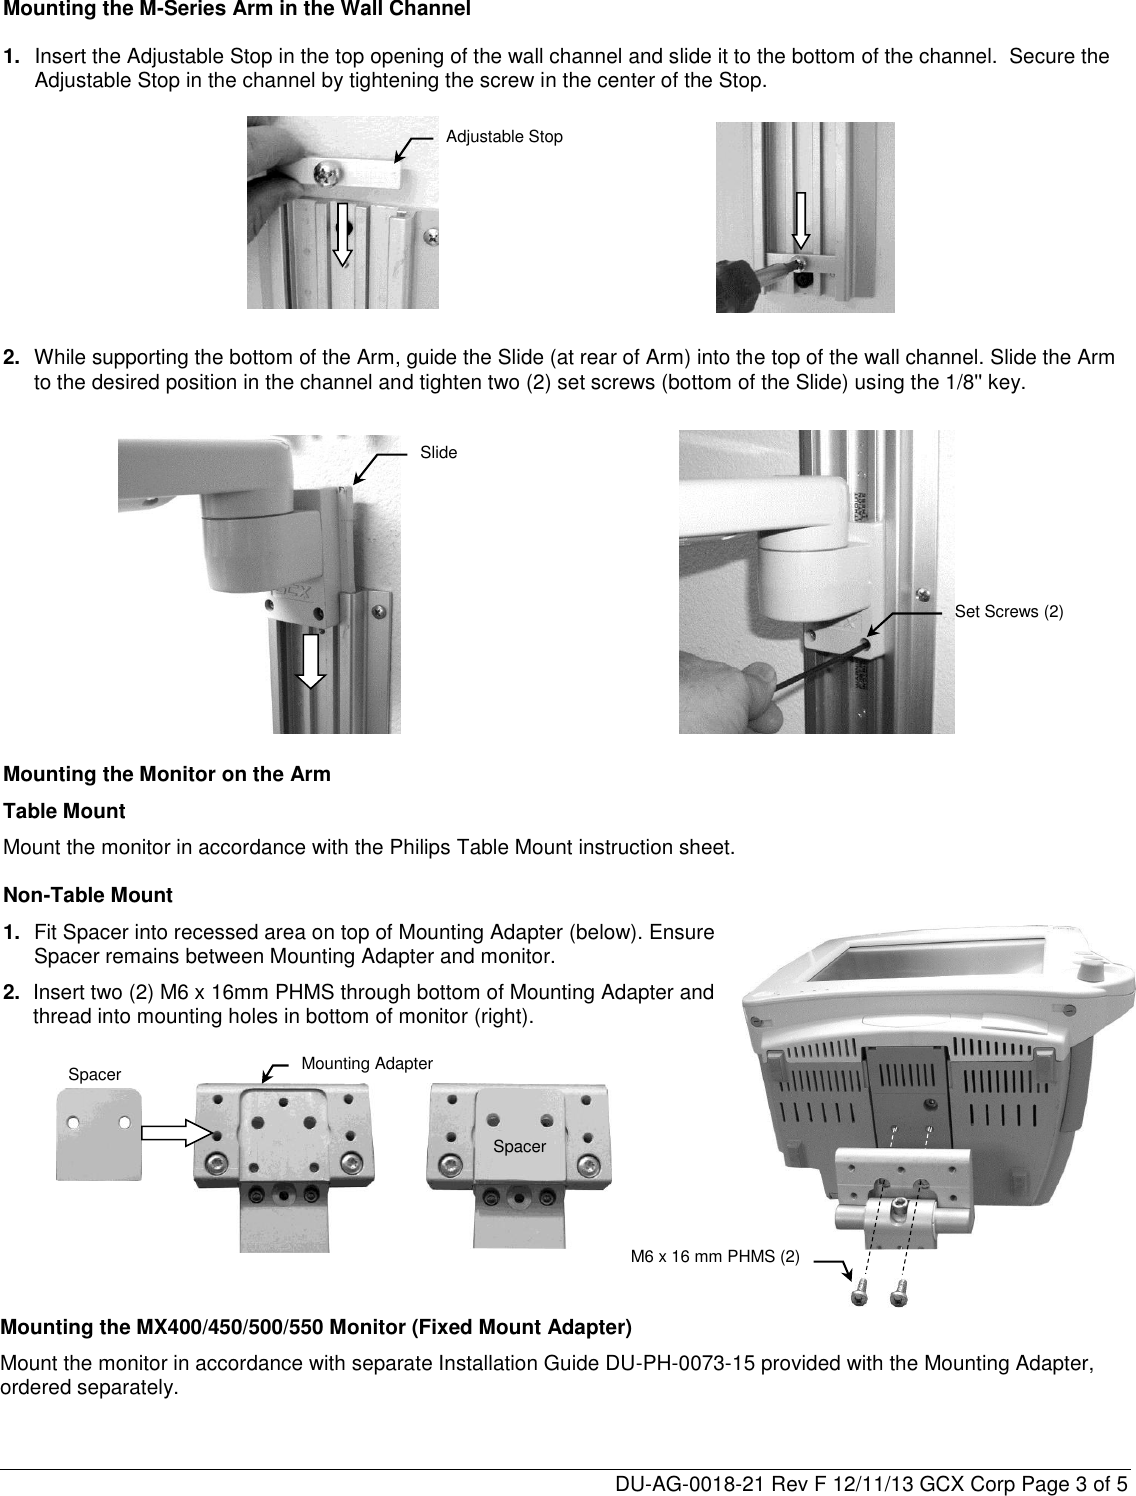 philips mnt80 gcx mounting assembly installation guide. Black Bedroom Furniture Sets. Home Design Ideas